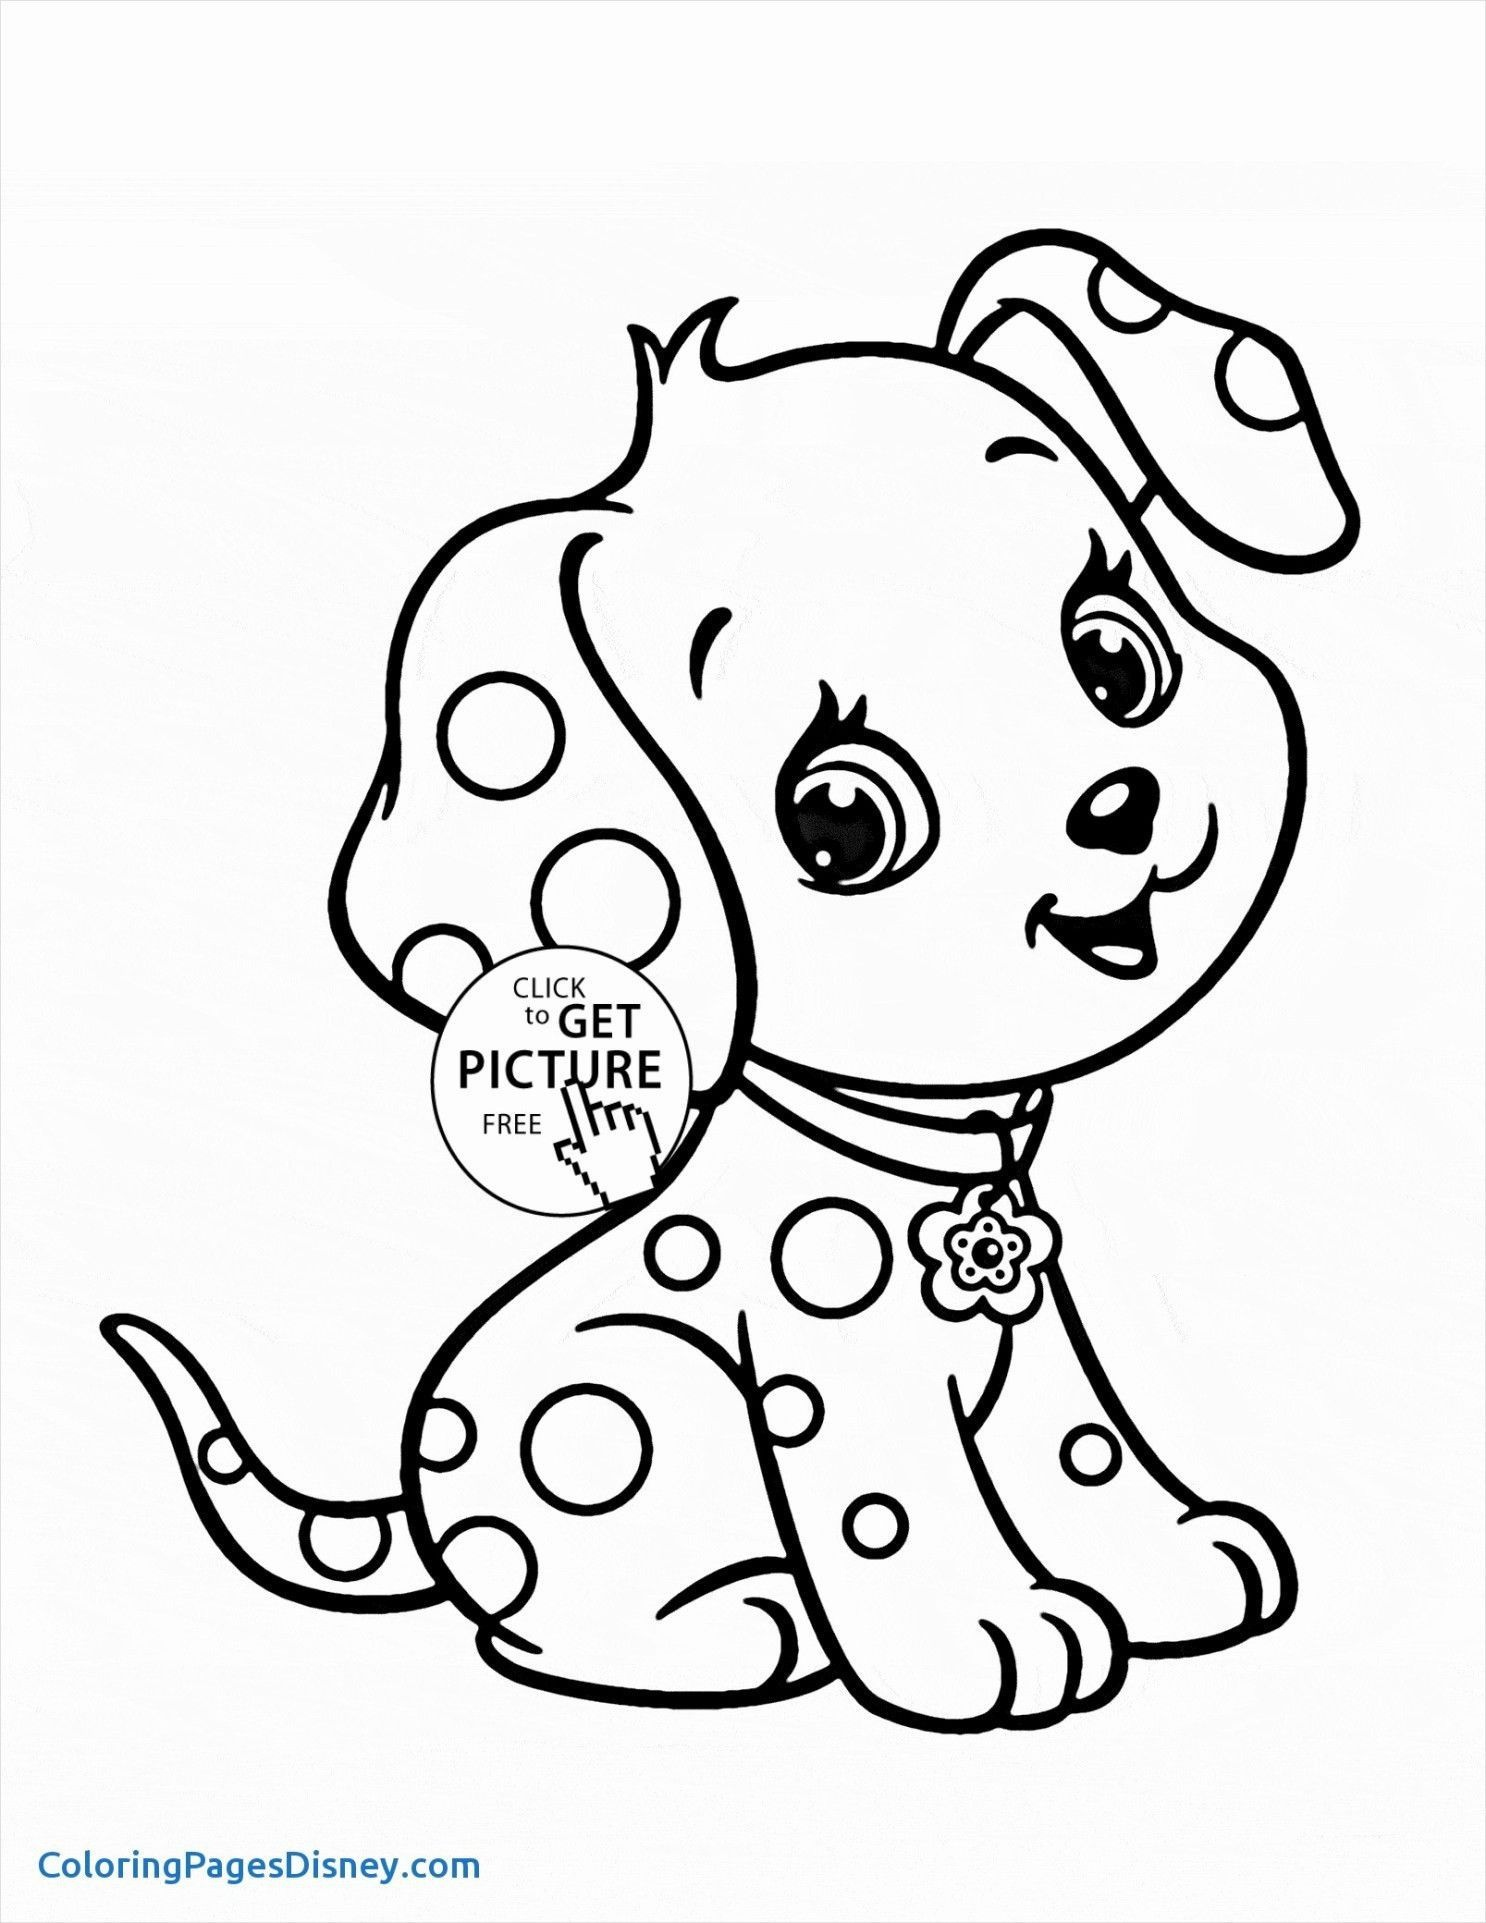 Inspirational Coloring Book For Toddlers Pdf   Jvzooreview - Free Printable Coloring Books Pdf